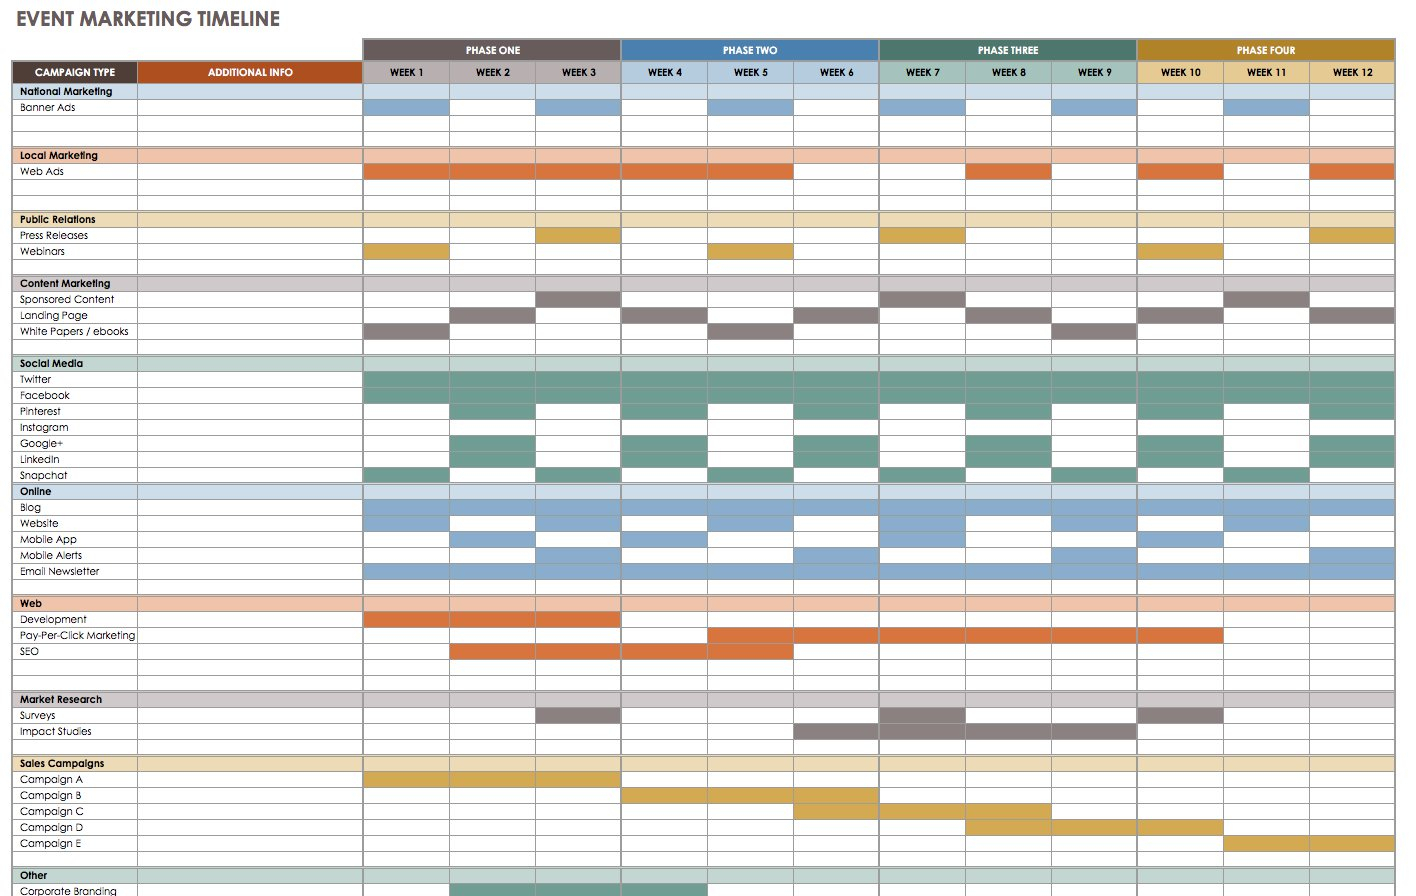 21 Free Event Planning Templates | Smartsheet throughout Event Planning Calendar Template